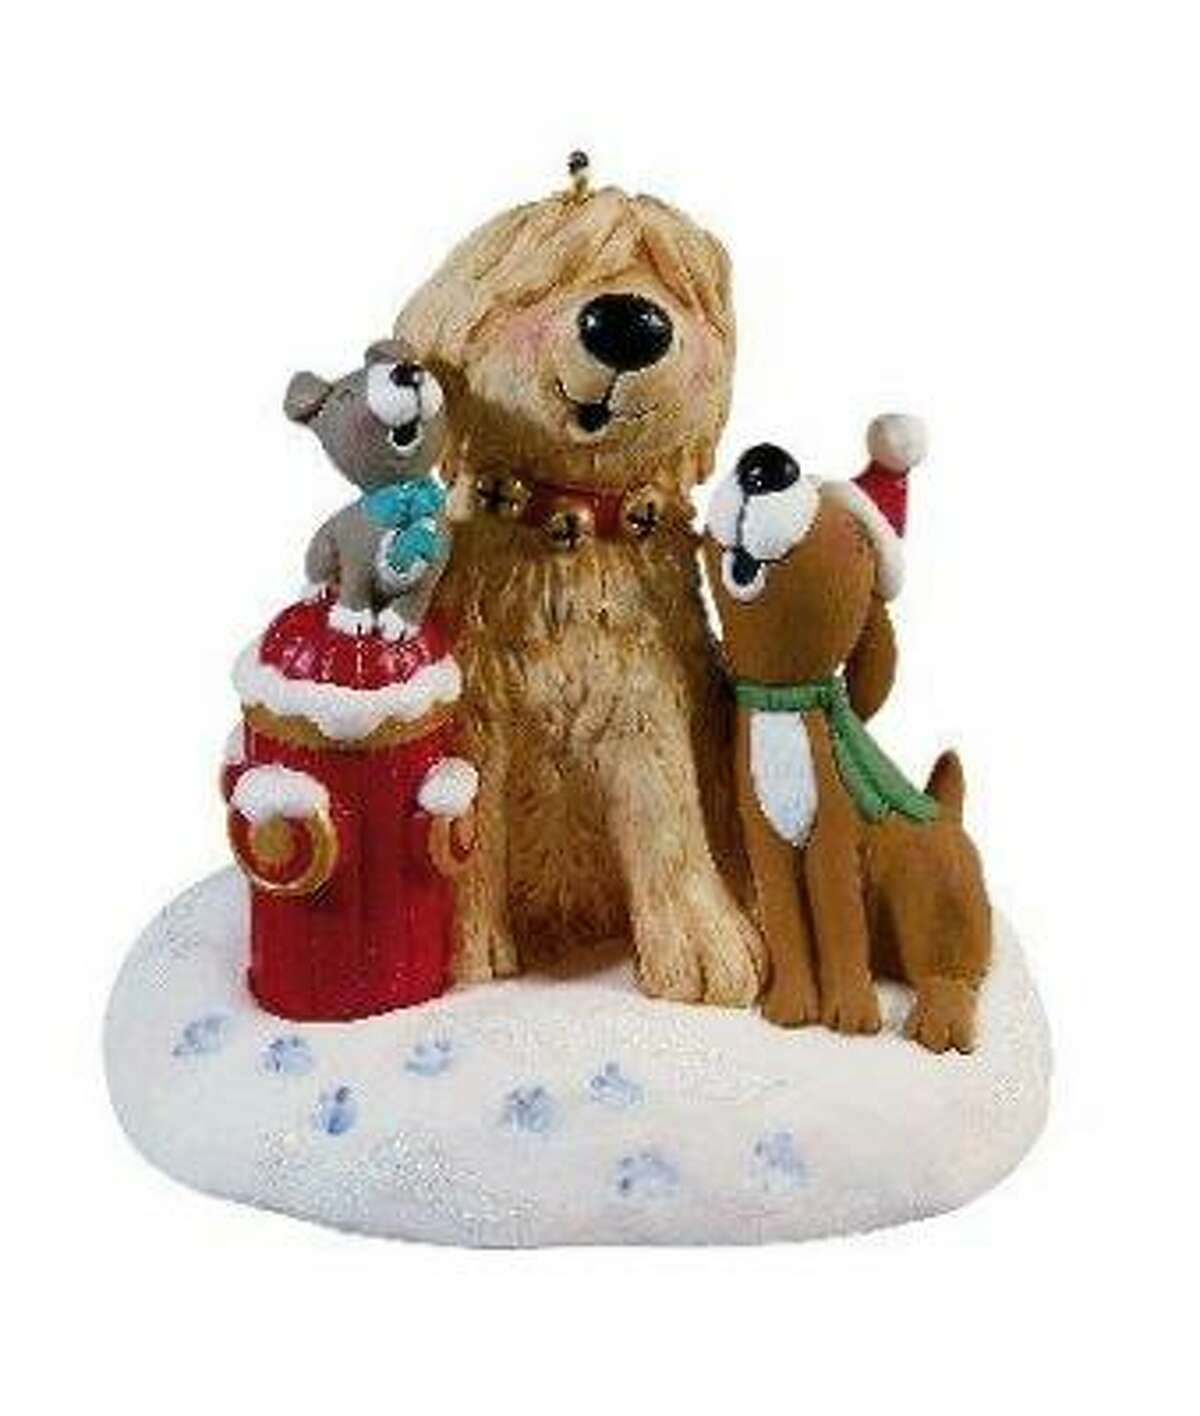 2009 Jingle Bells ornament: Hearing the sound of the Singing Dogs performing Jingles Bells coming from this battery-operated Hallmark ornament will put even a cat in the holiday spirit. Or, maybe it will scare him away from climbing the tree. $16.50, Hallmark stores